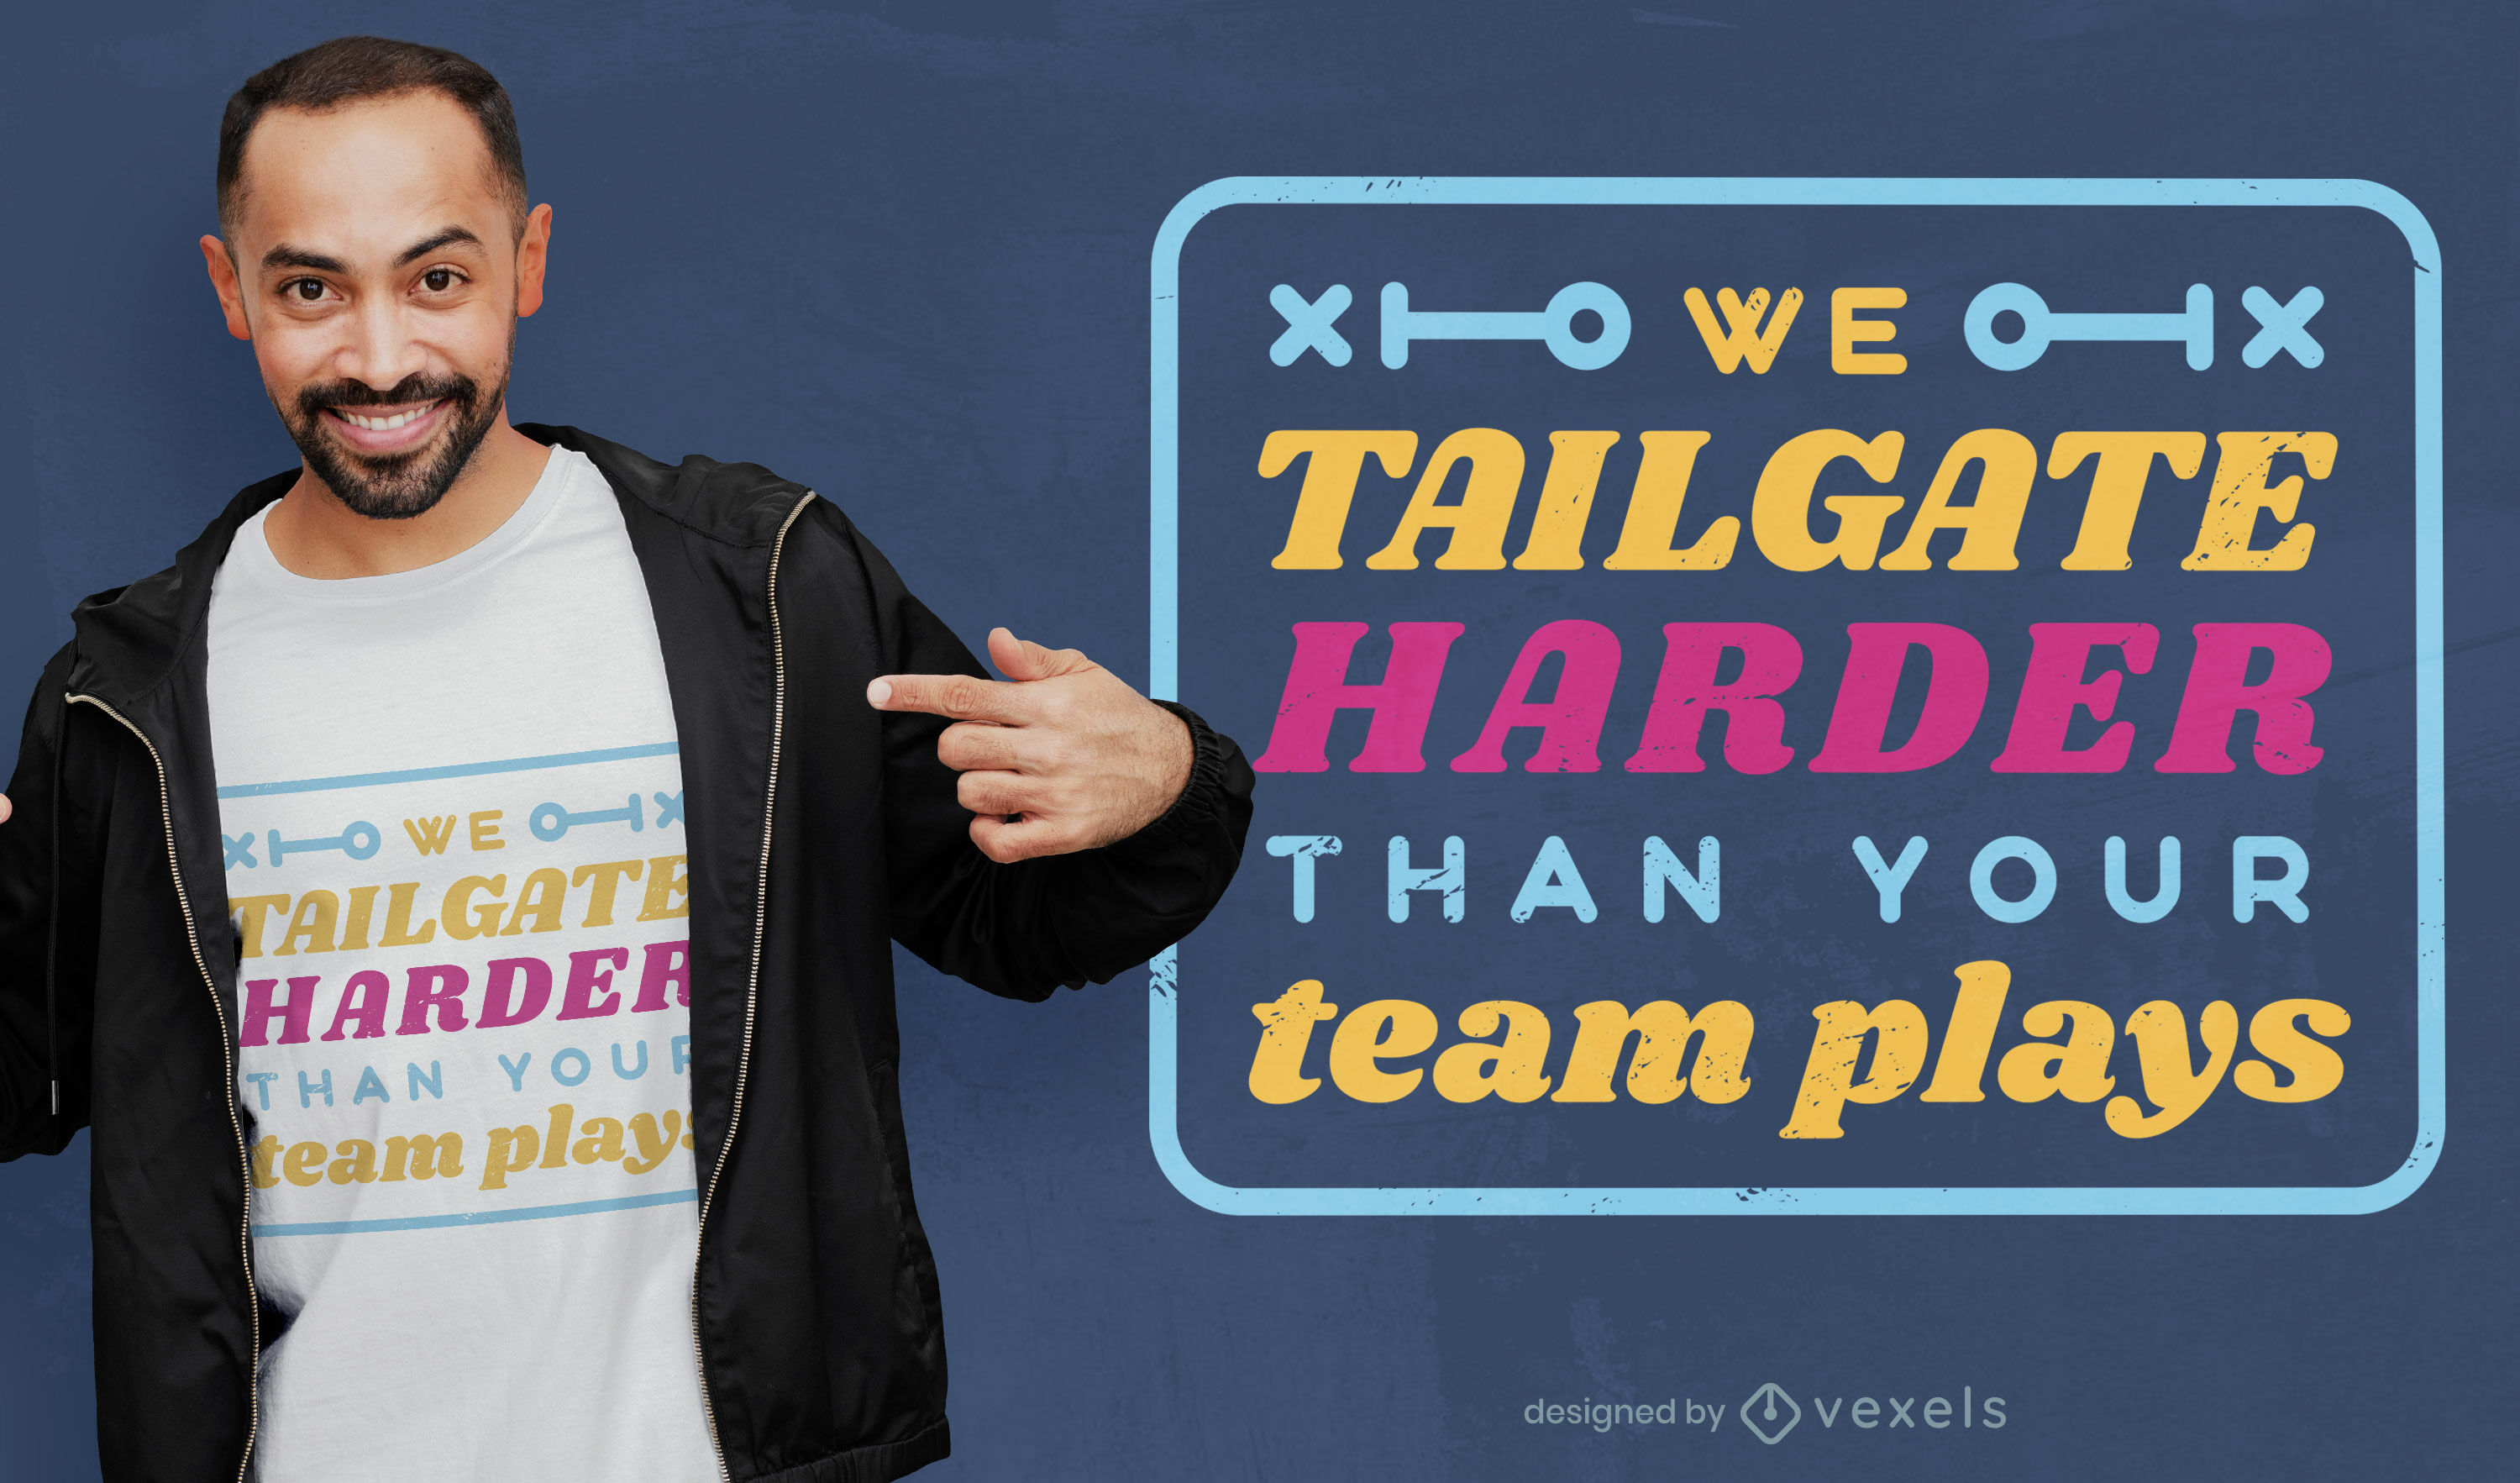 Football sport tailgate party t-shirt design